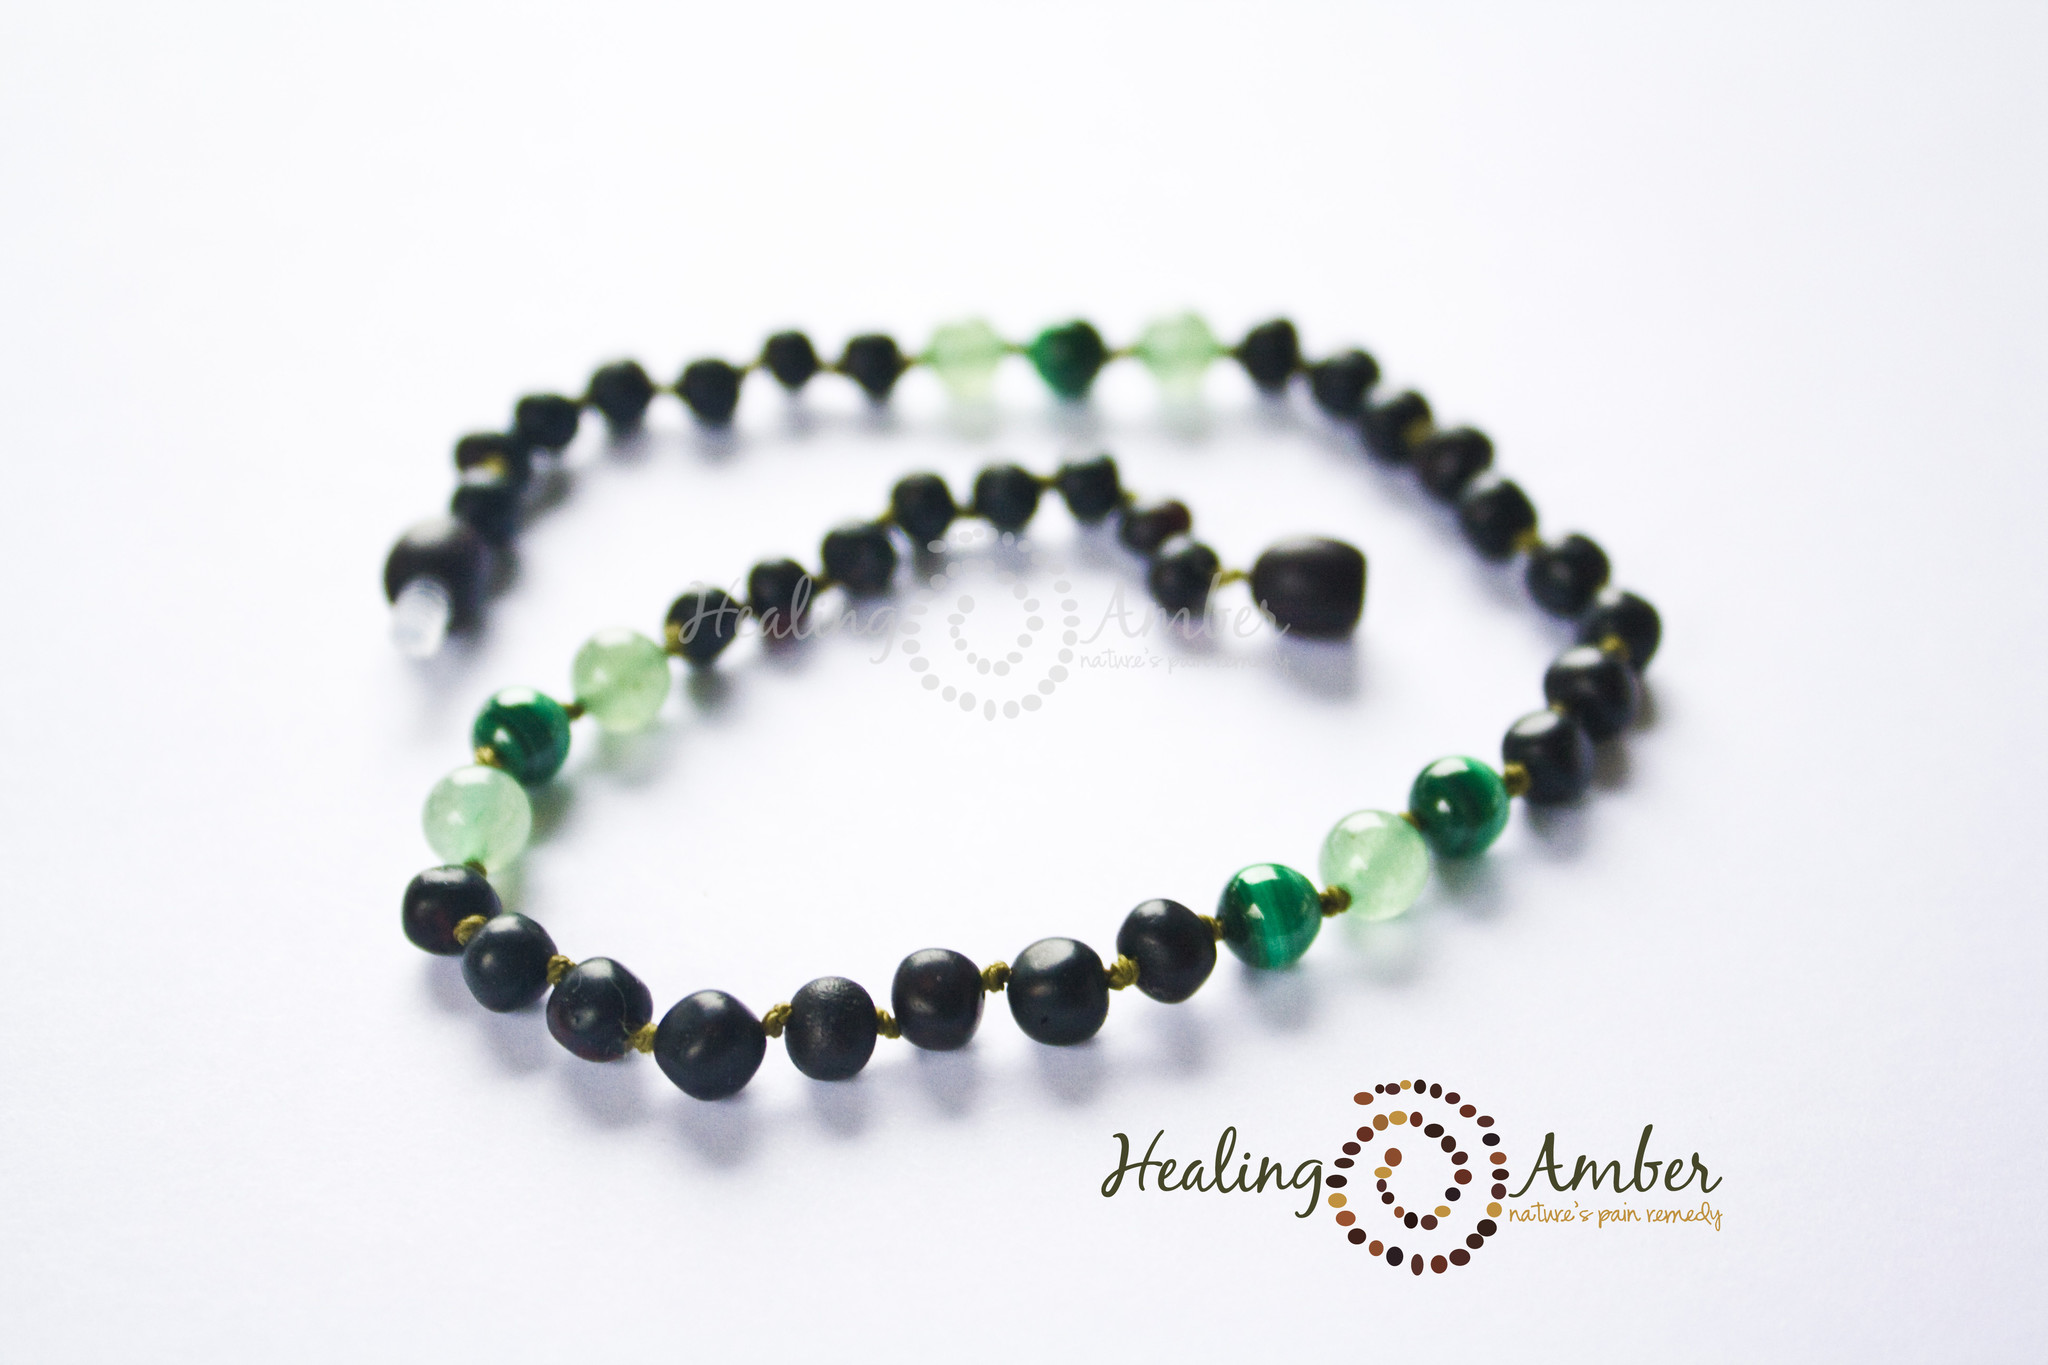 Healing Amber Raw Molasses & Green Aventurine/Malachite 11 Inch